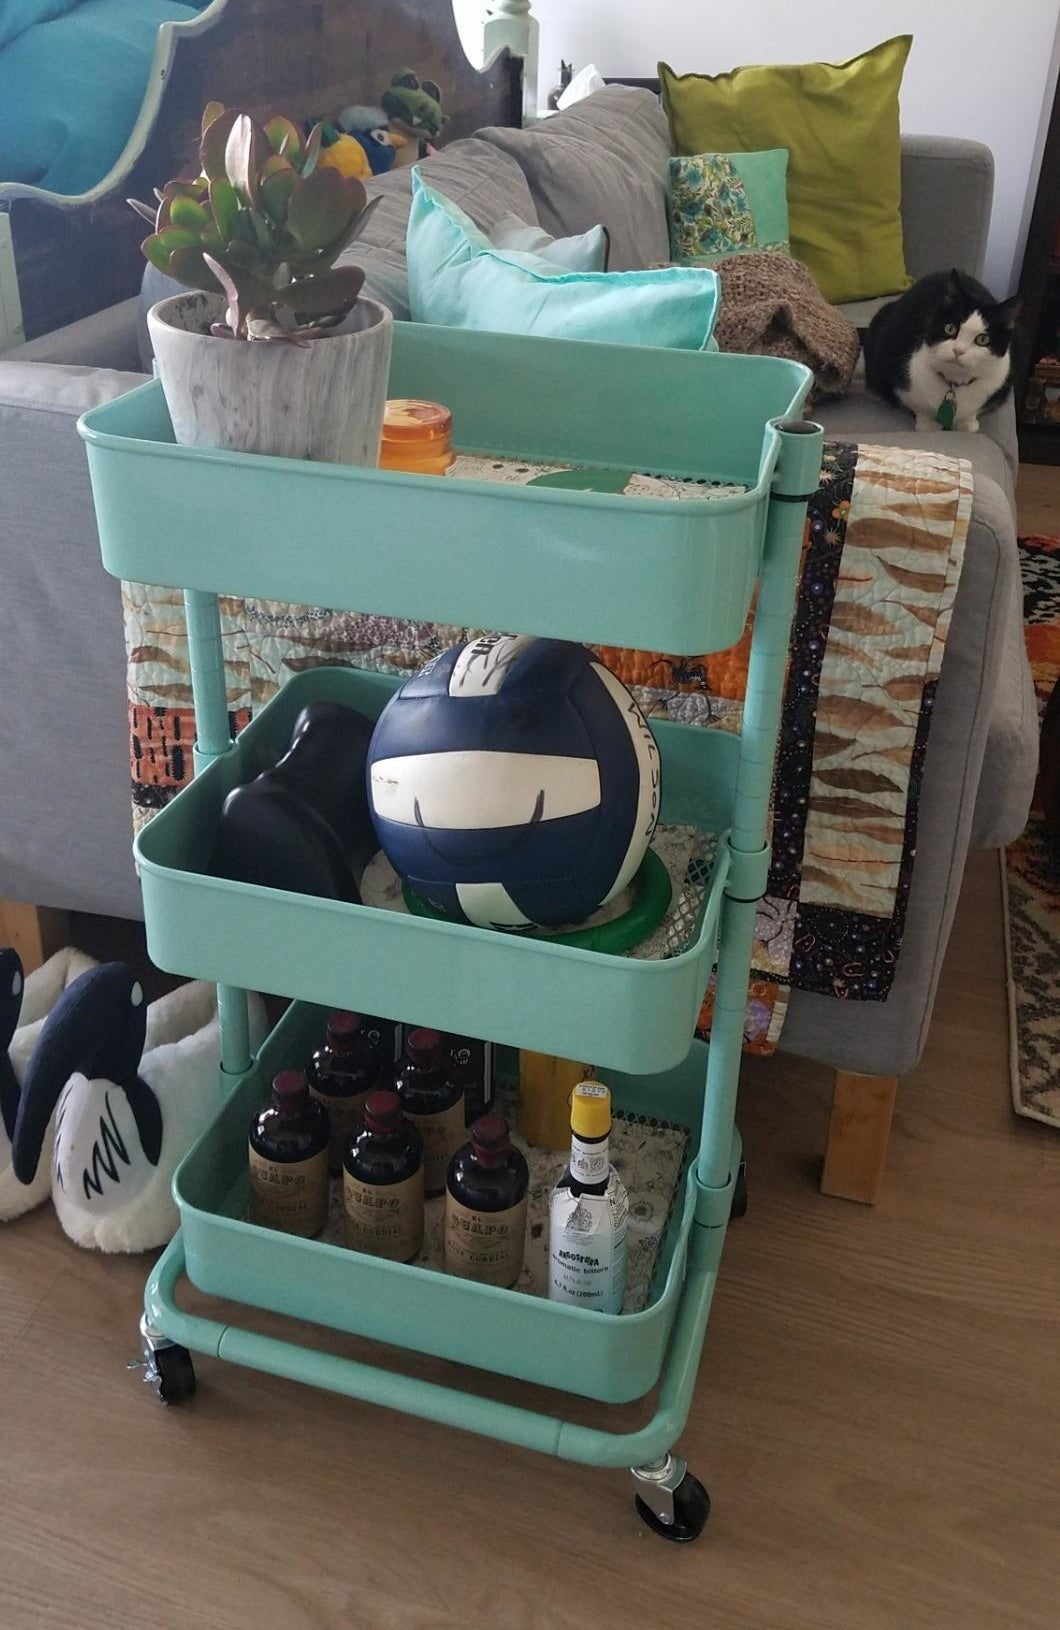 reviewer image of the mint green SONGMICS 3-Tier Utility Cart in a studio apartment with assorted goods in each basket